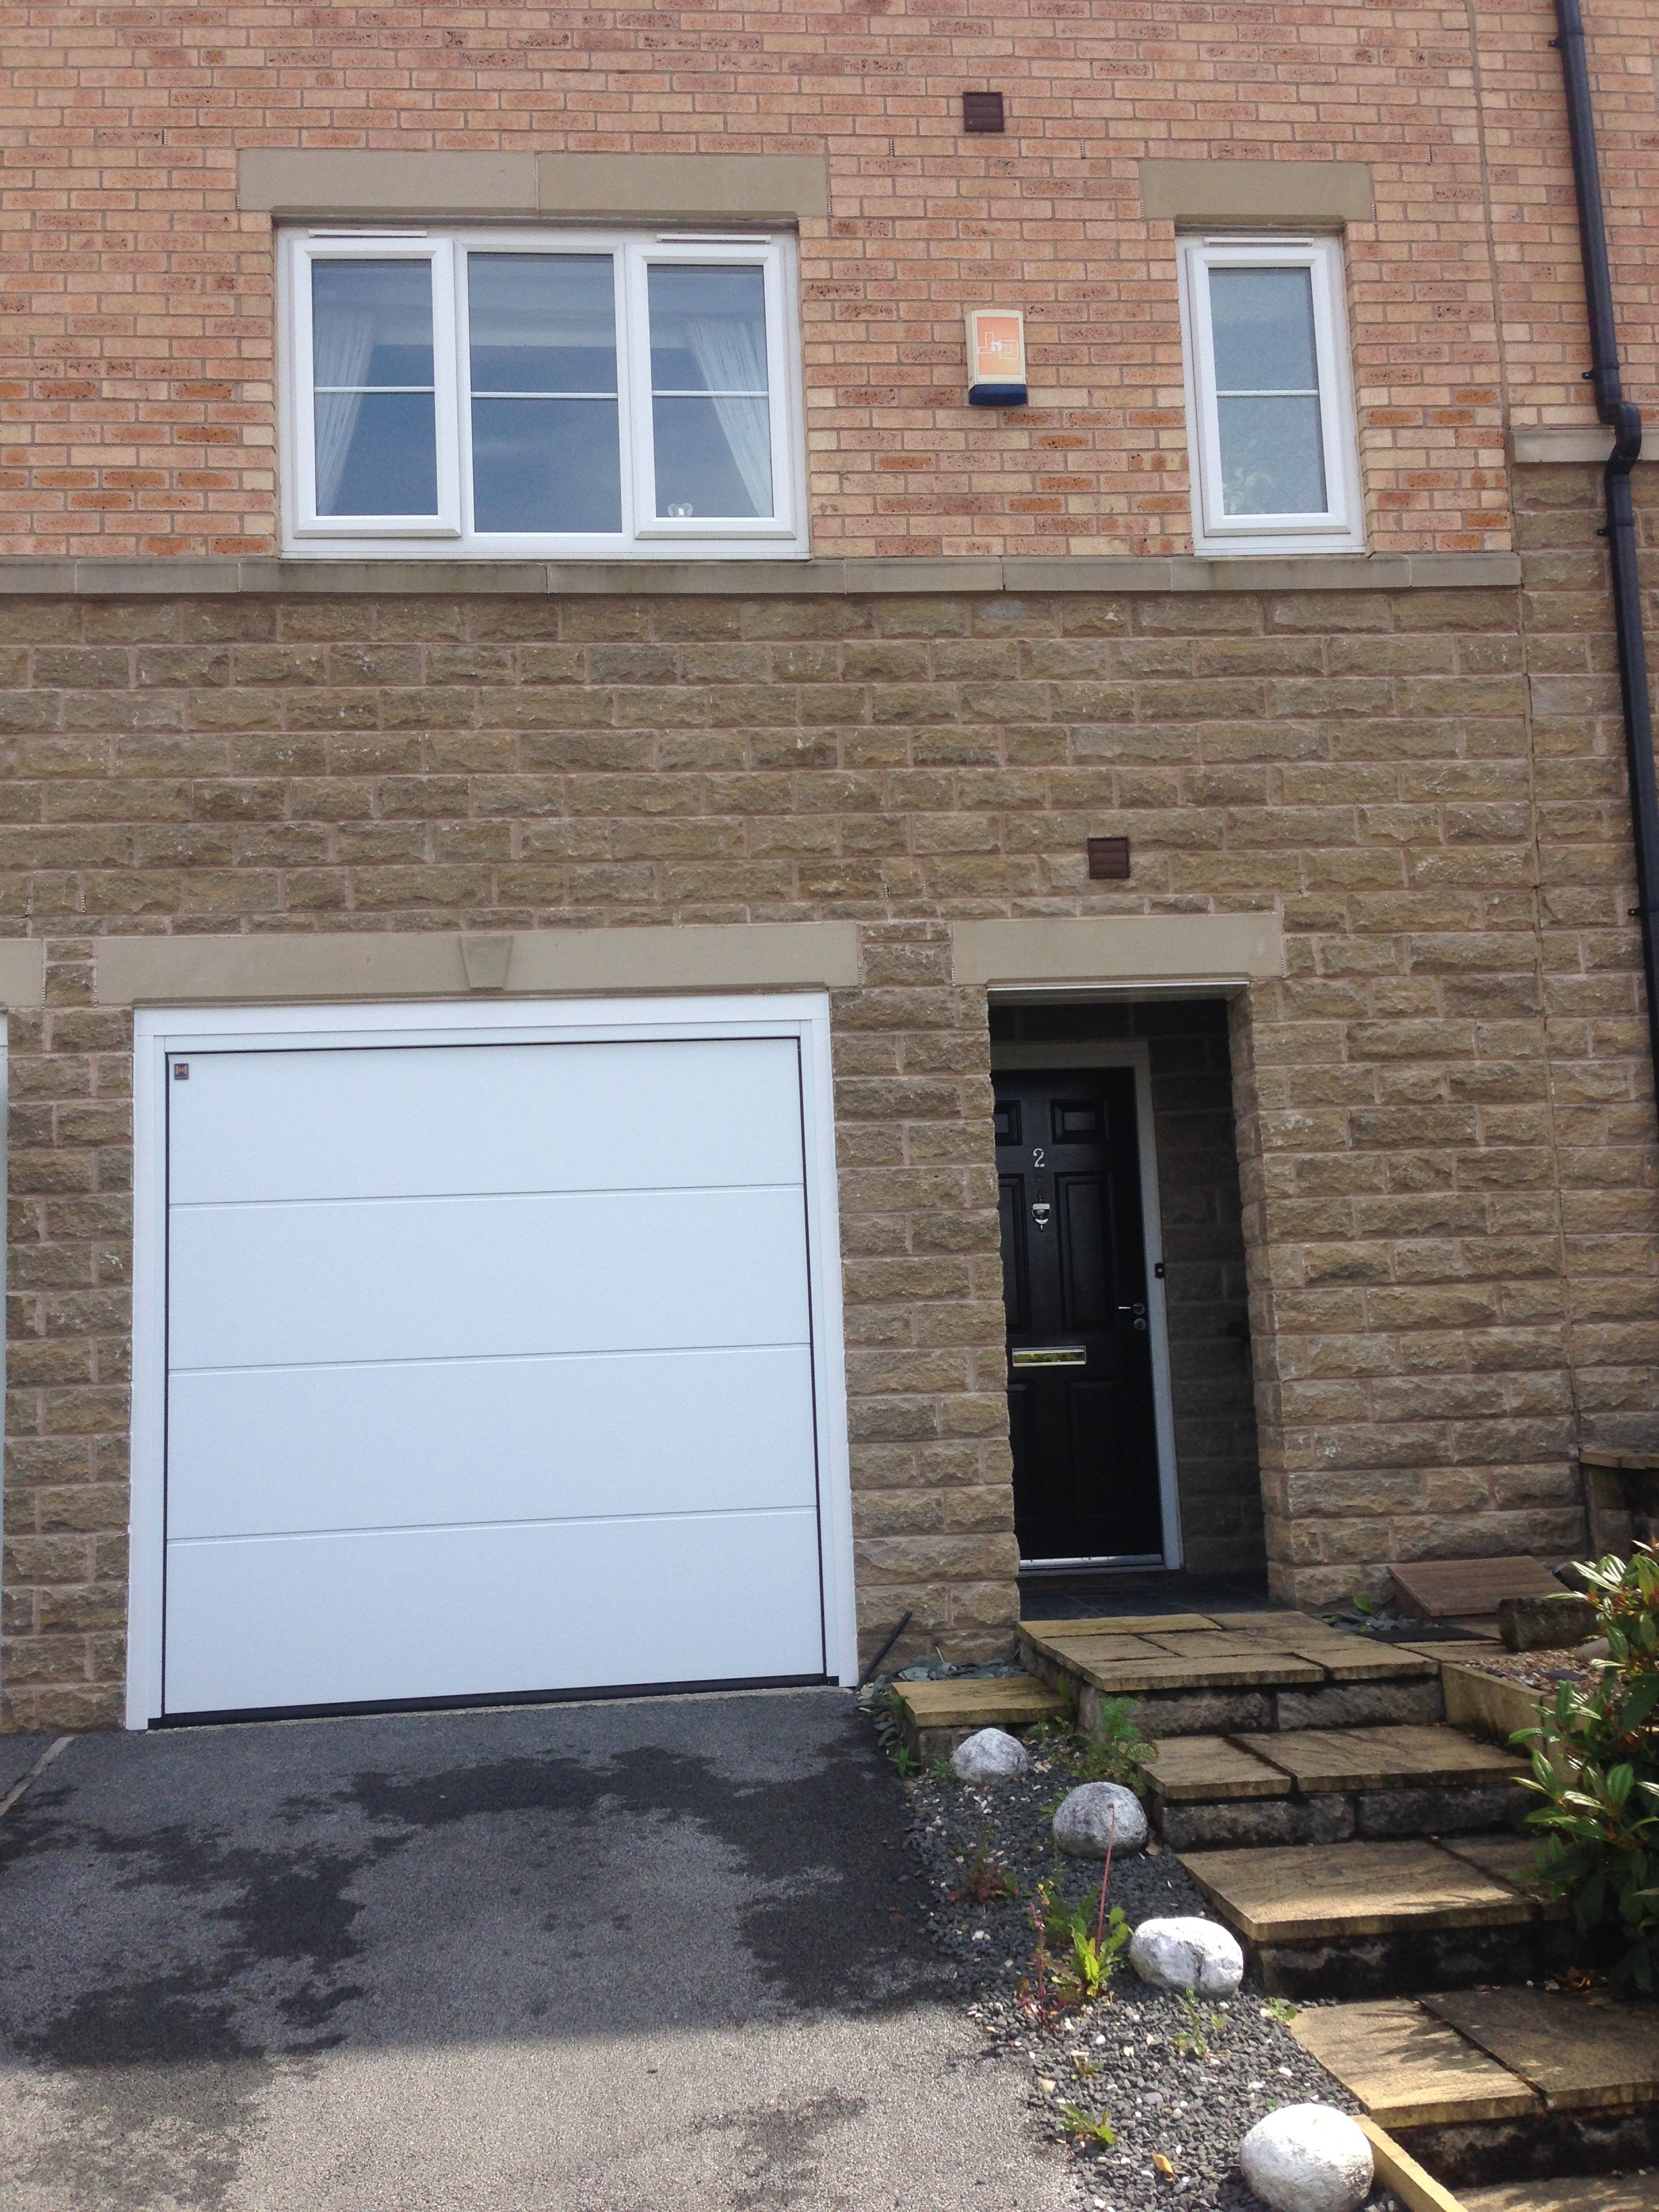 3264 #436188  LPU40 Sectional Garage Door Installed In Leeds ABi Garage Doors pic Installed Garage Doors 37212448